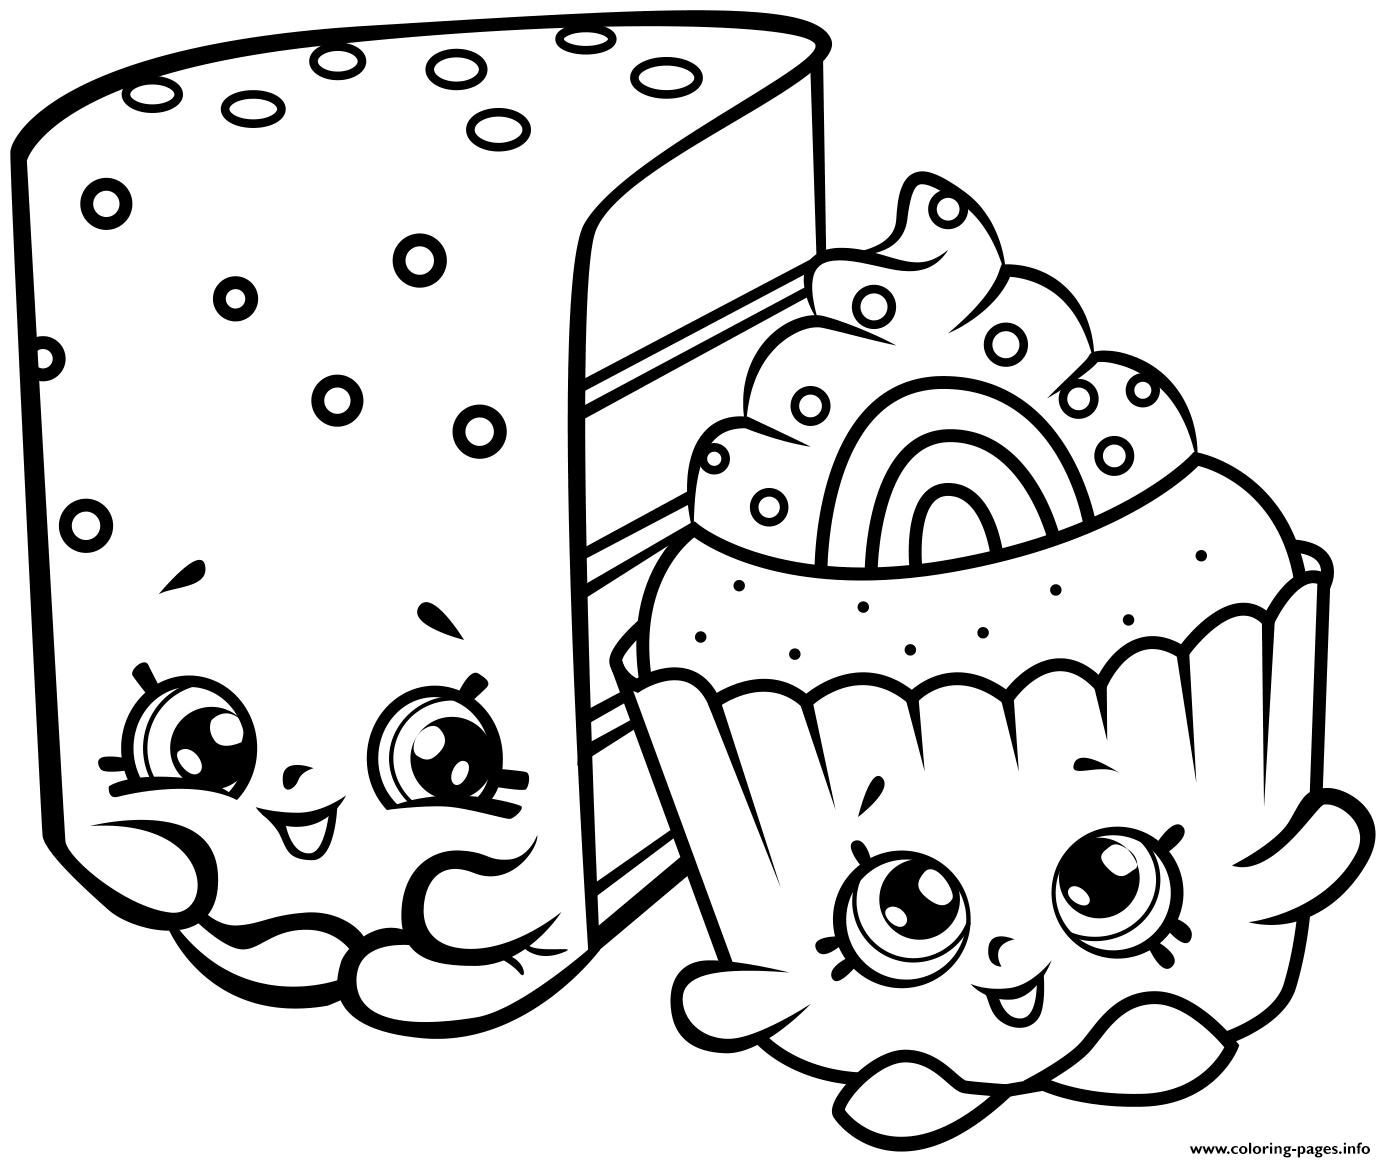 Coloring pages shopkins